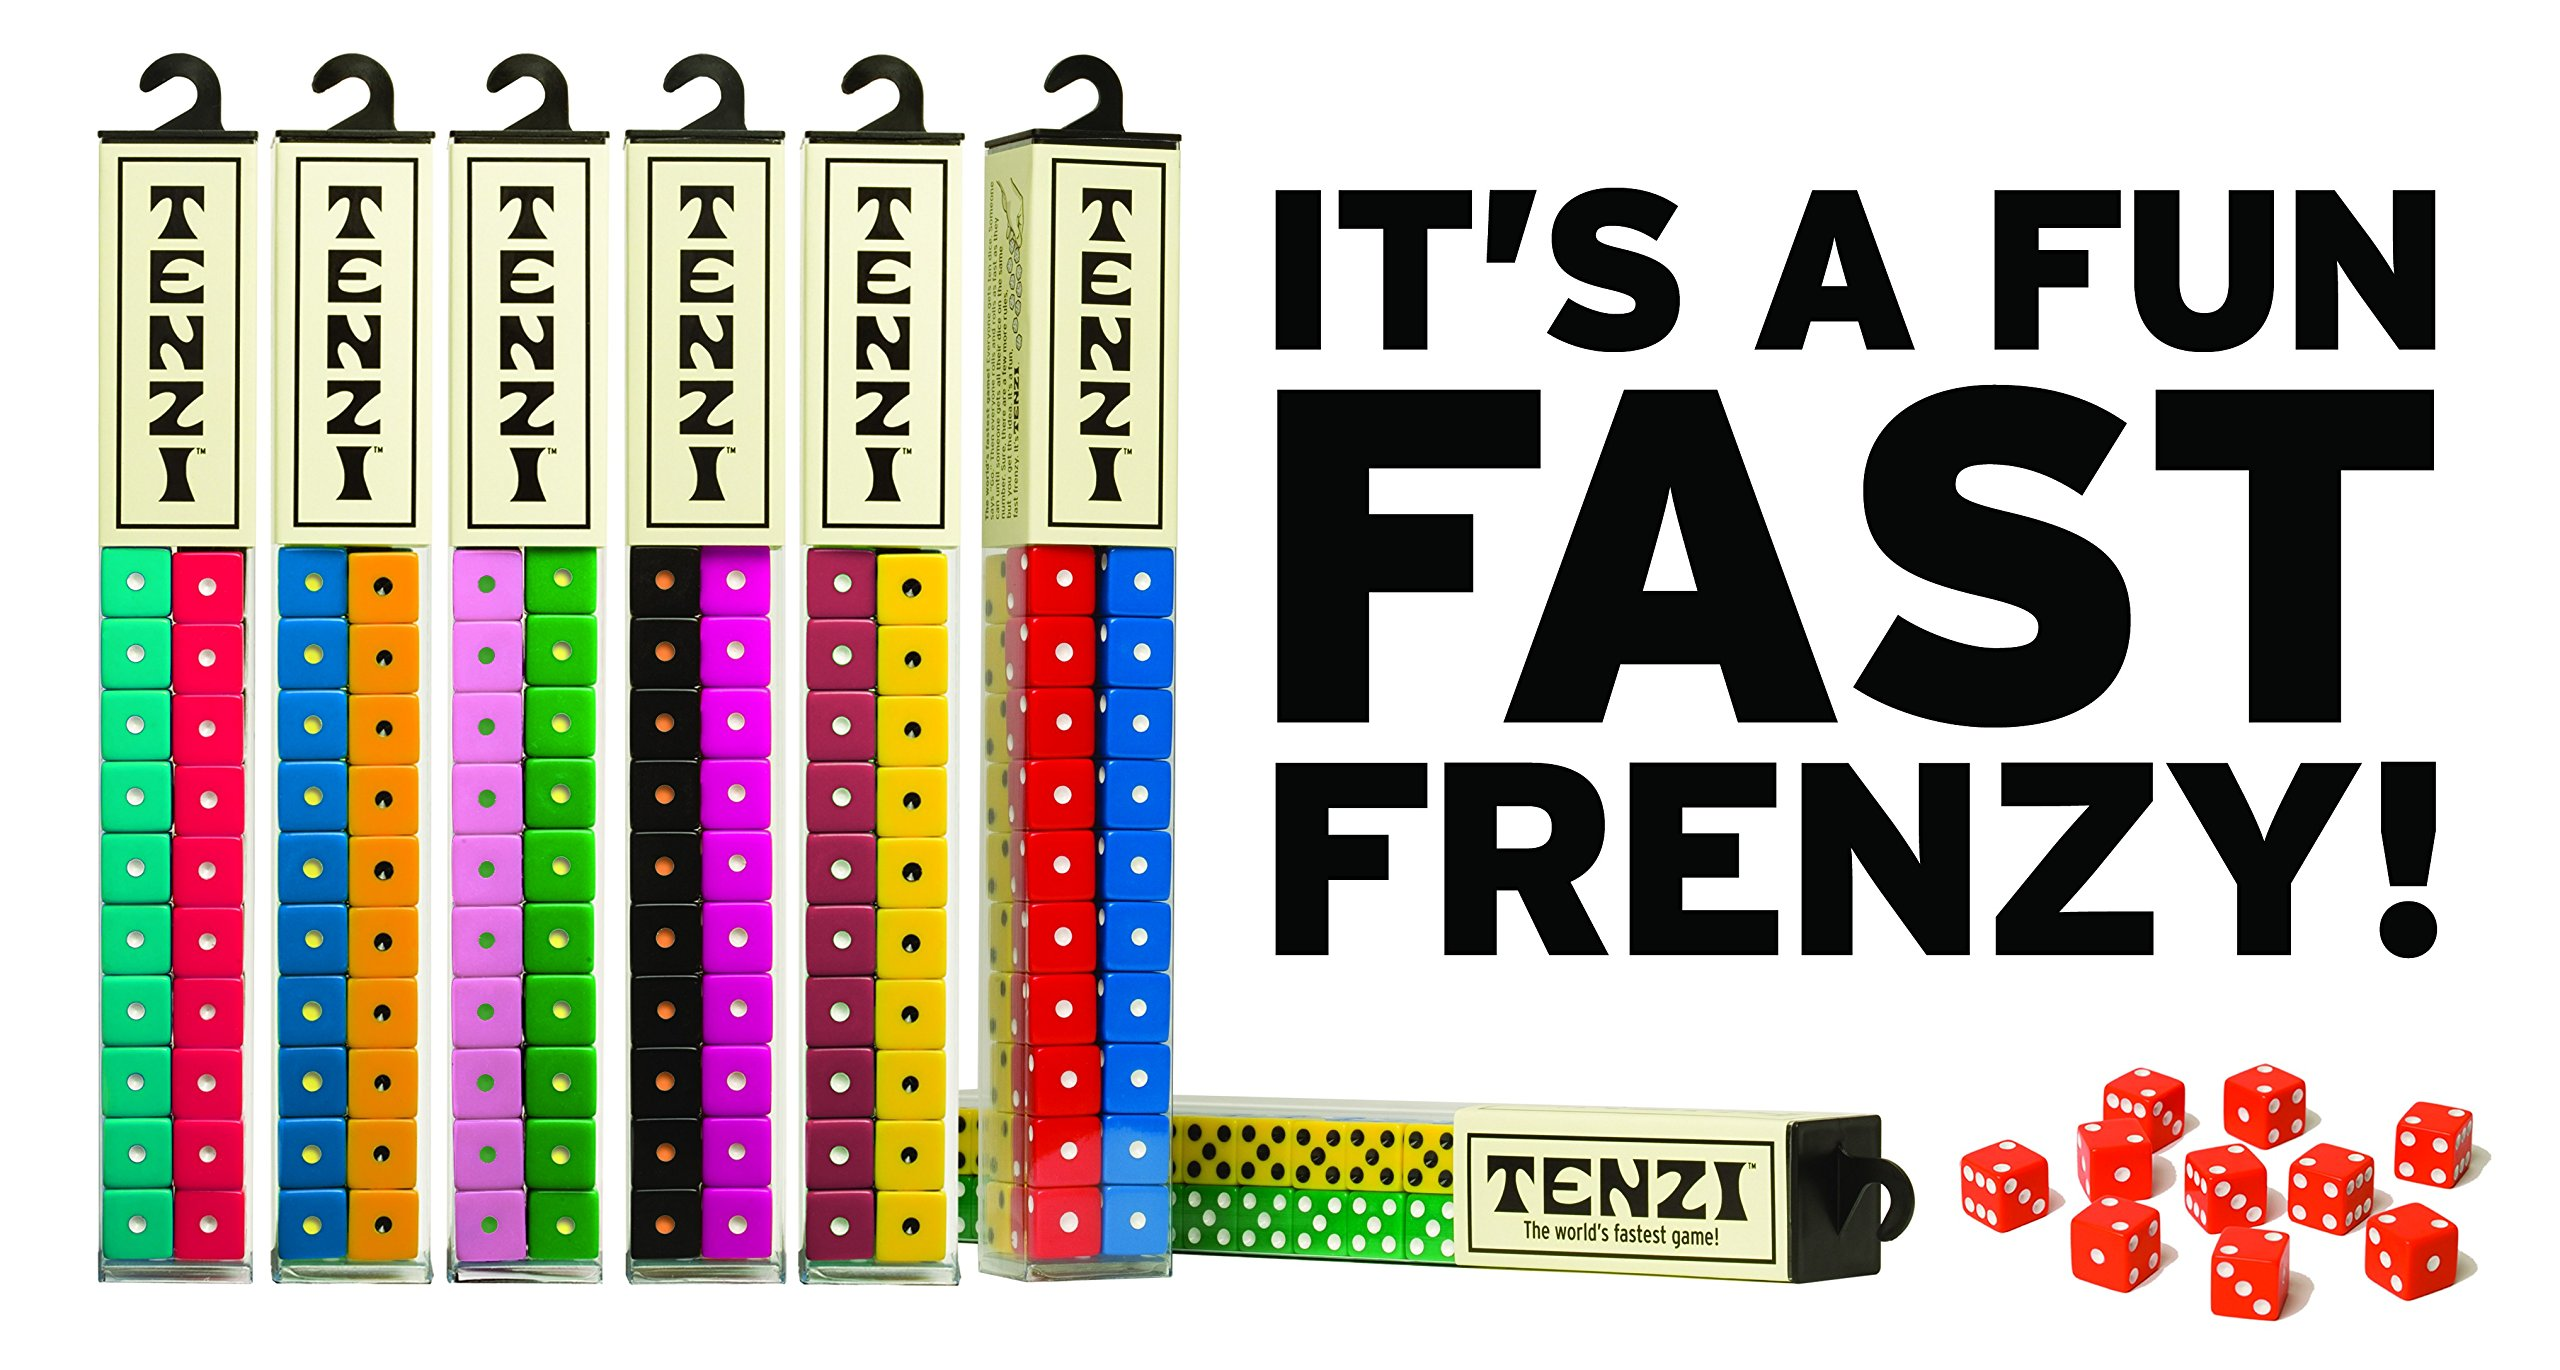 Tenzi Dice Party Game - A Fun, Fast Frenzy For All Ages - 4 Sets of 10 Colored Dice (Colors May Vary)